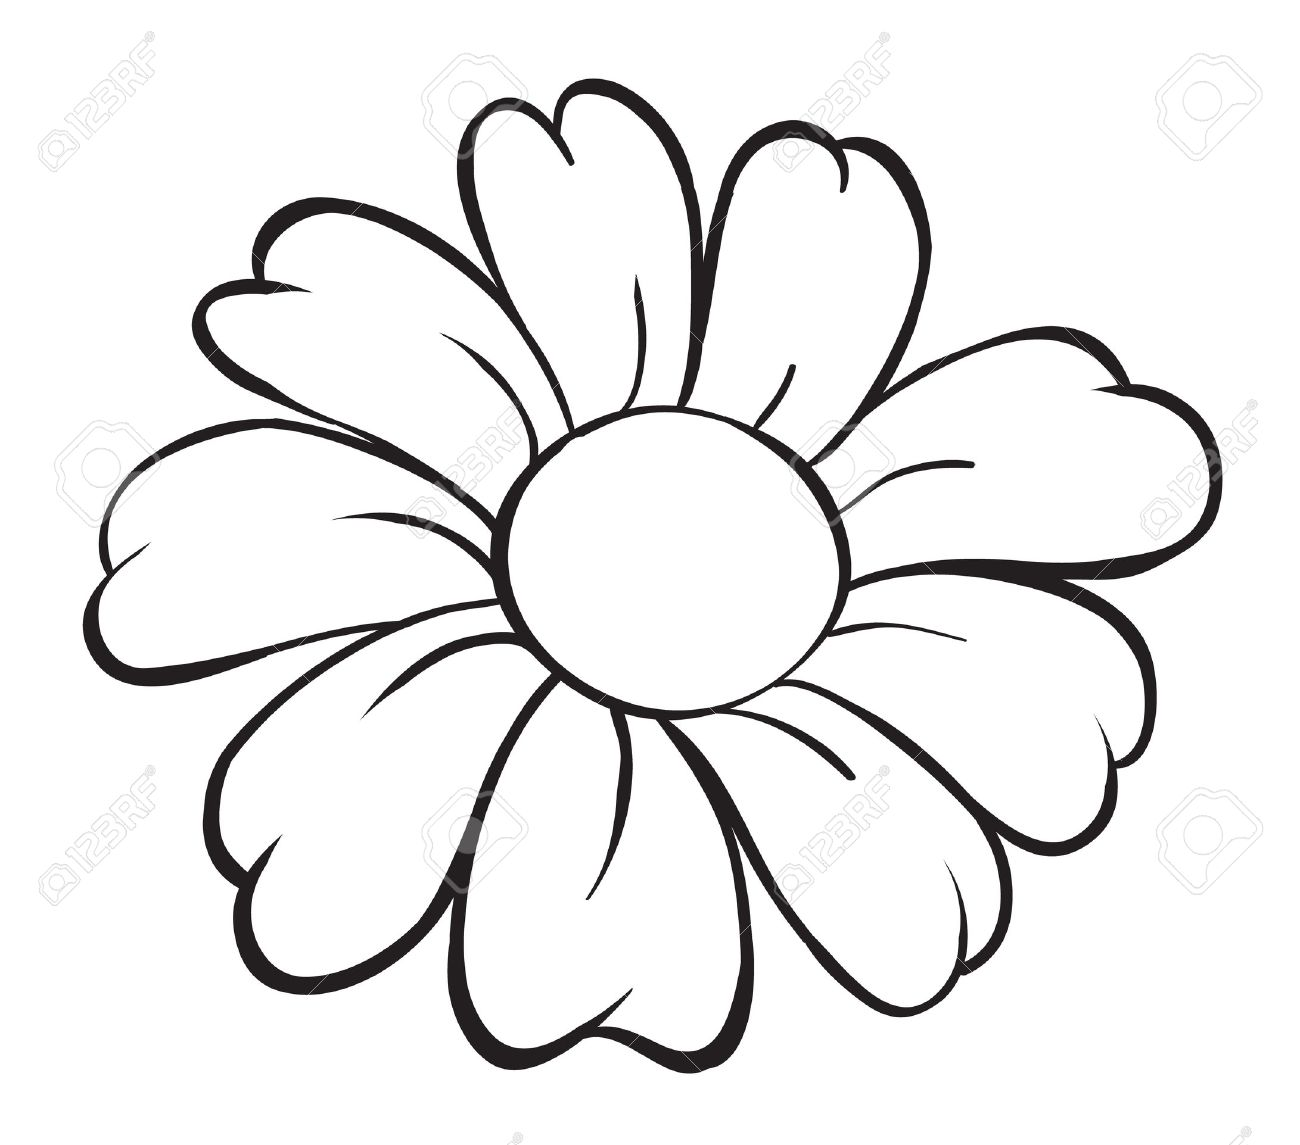 Black and white drawing of flowers at getdrawings free for 1300x1145 illustration of flower sketch on white background royalty free mightylinksfo